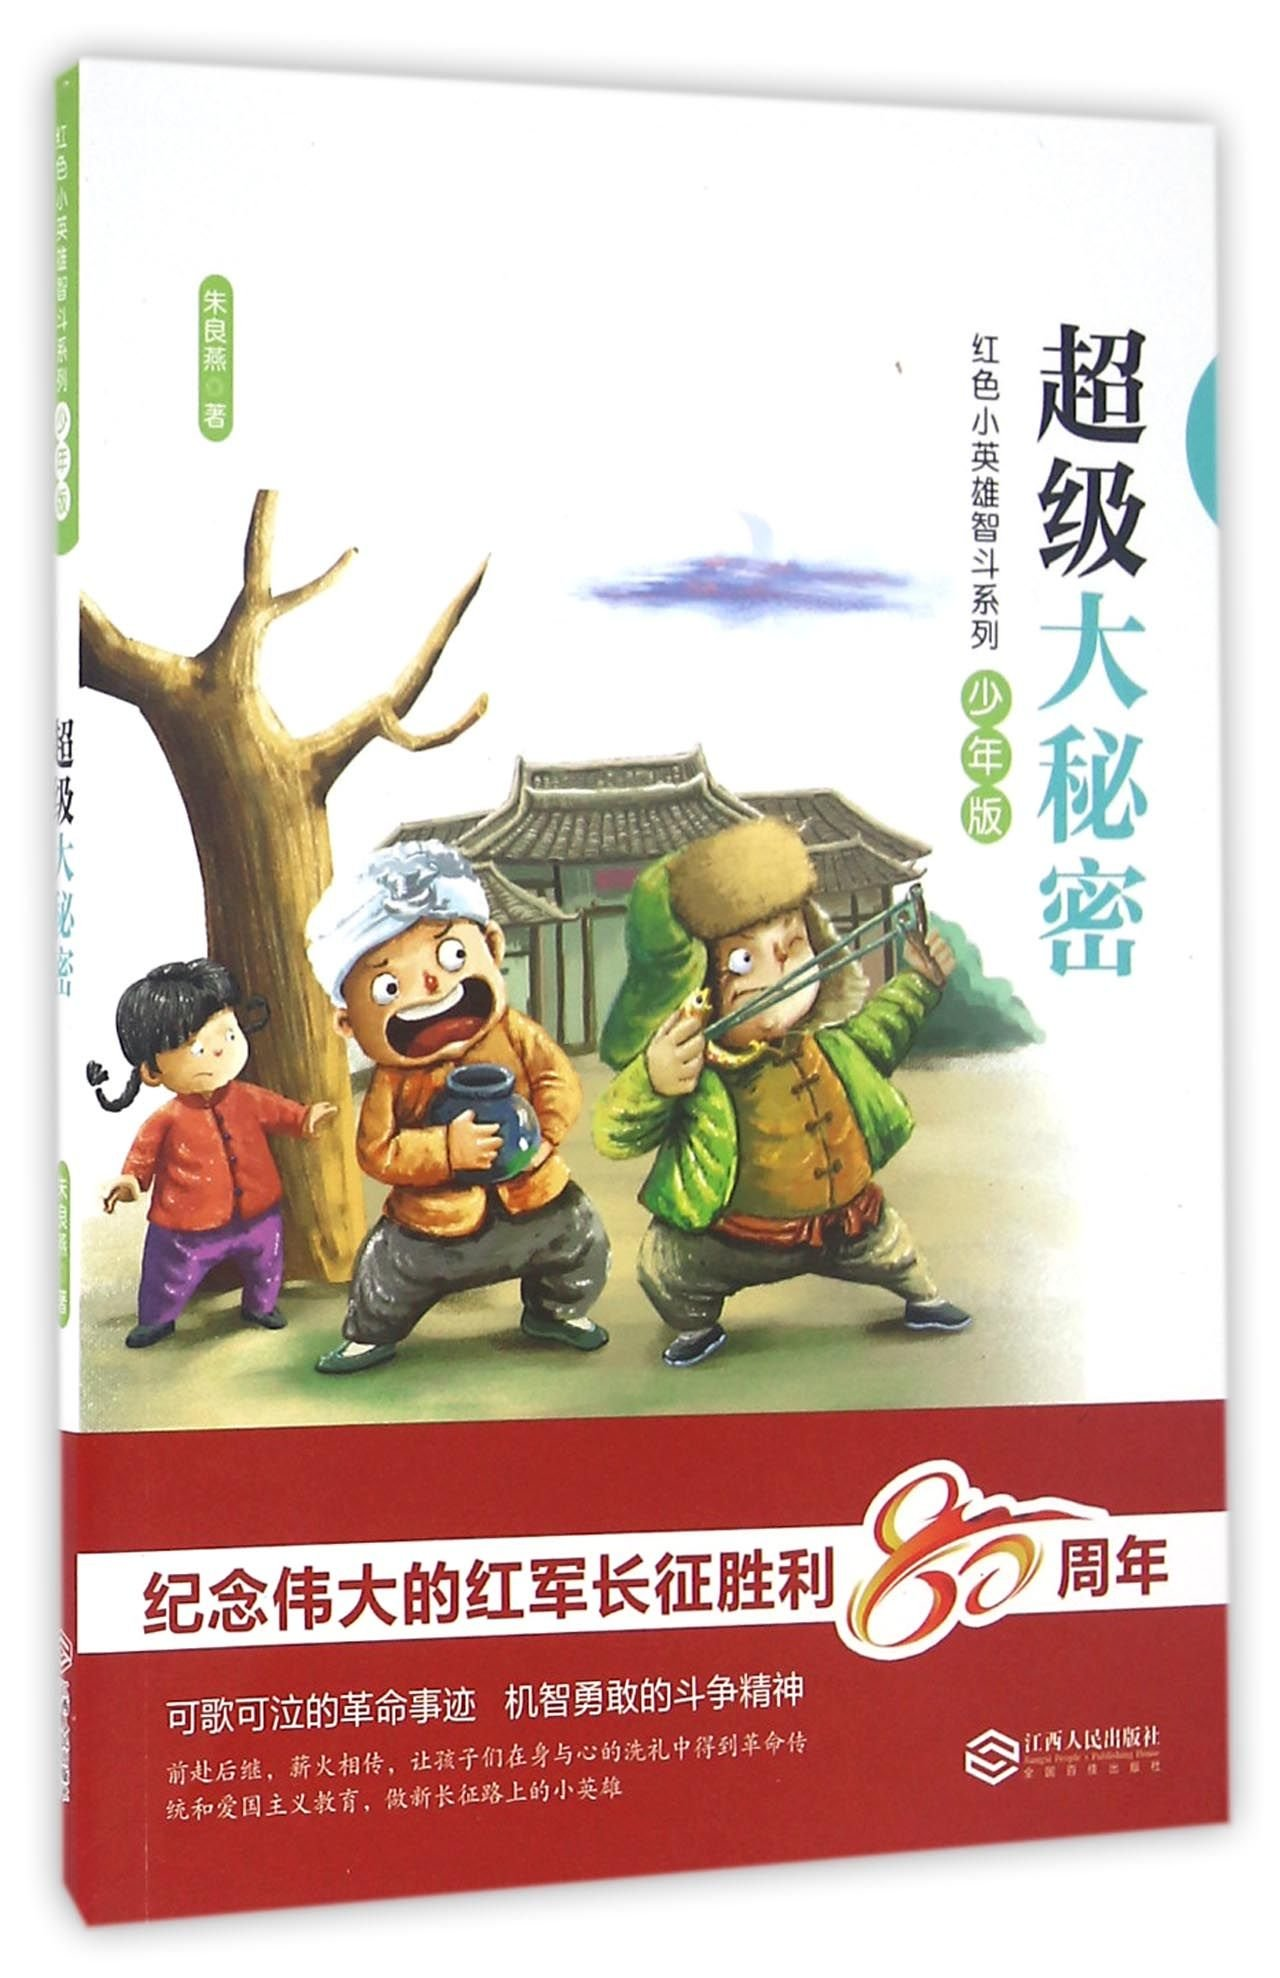 A Super Big Secret (Juvenile Edition) (Little Red Heroes Smart Fighting Series) (Chinese Edition) ebook